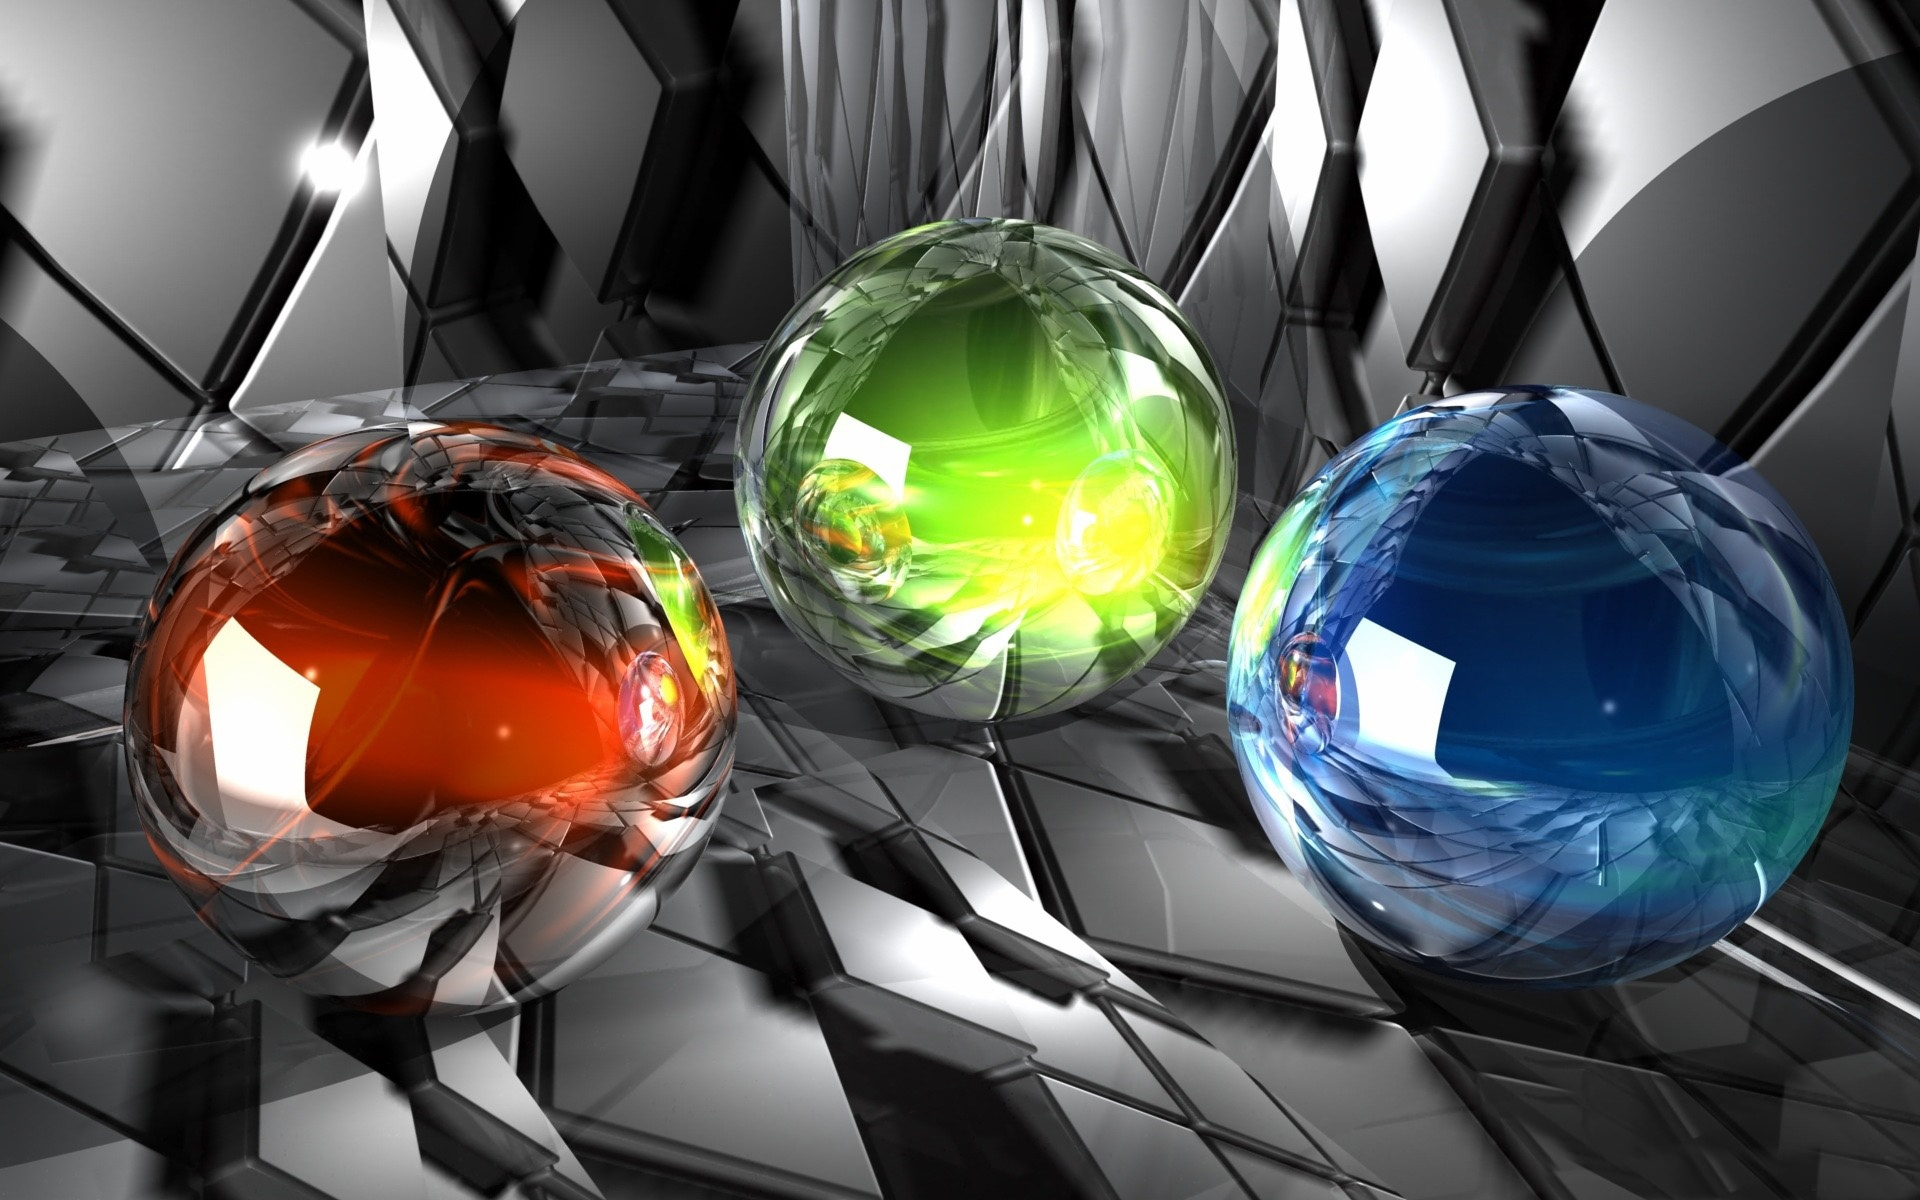 3d Cube Live Wallpaper Free Download Bright Colorful Balls Abstract Wallpapers Bright